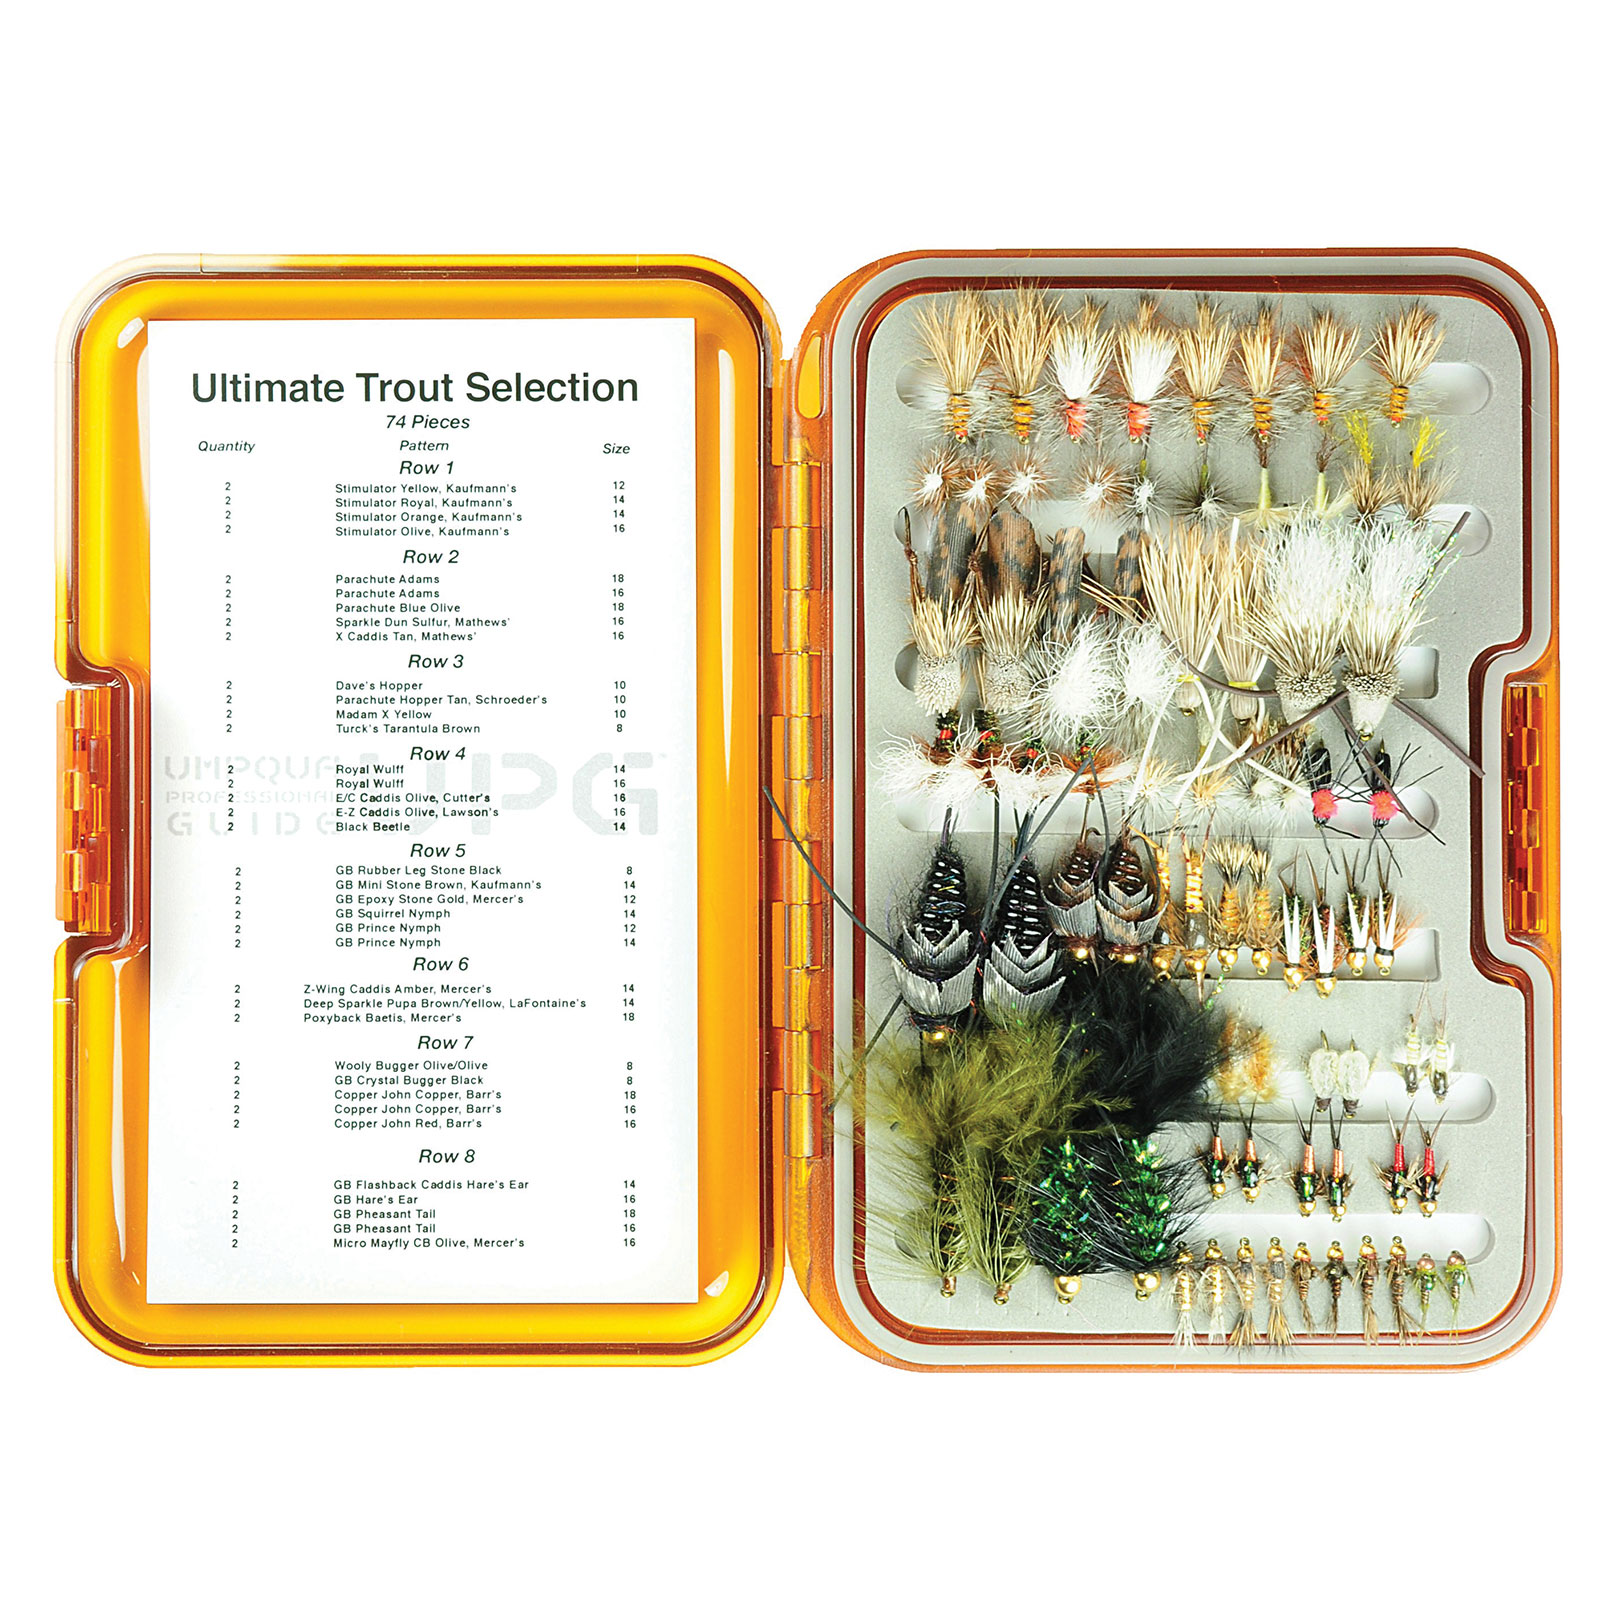 Umpqua Fly Fishing Ultimate Trout Selection UPG Fly Box